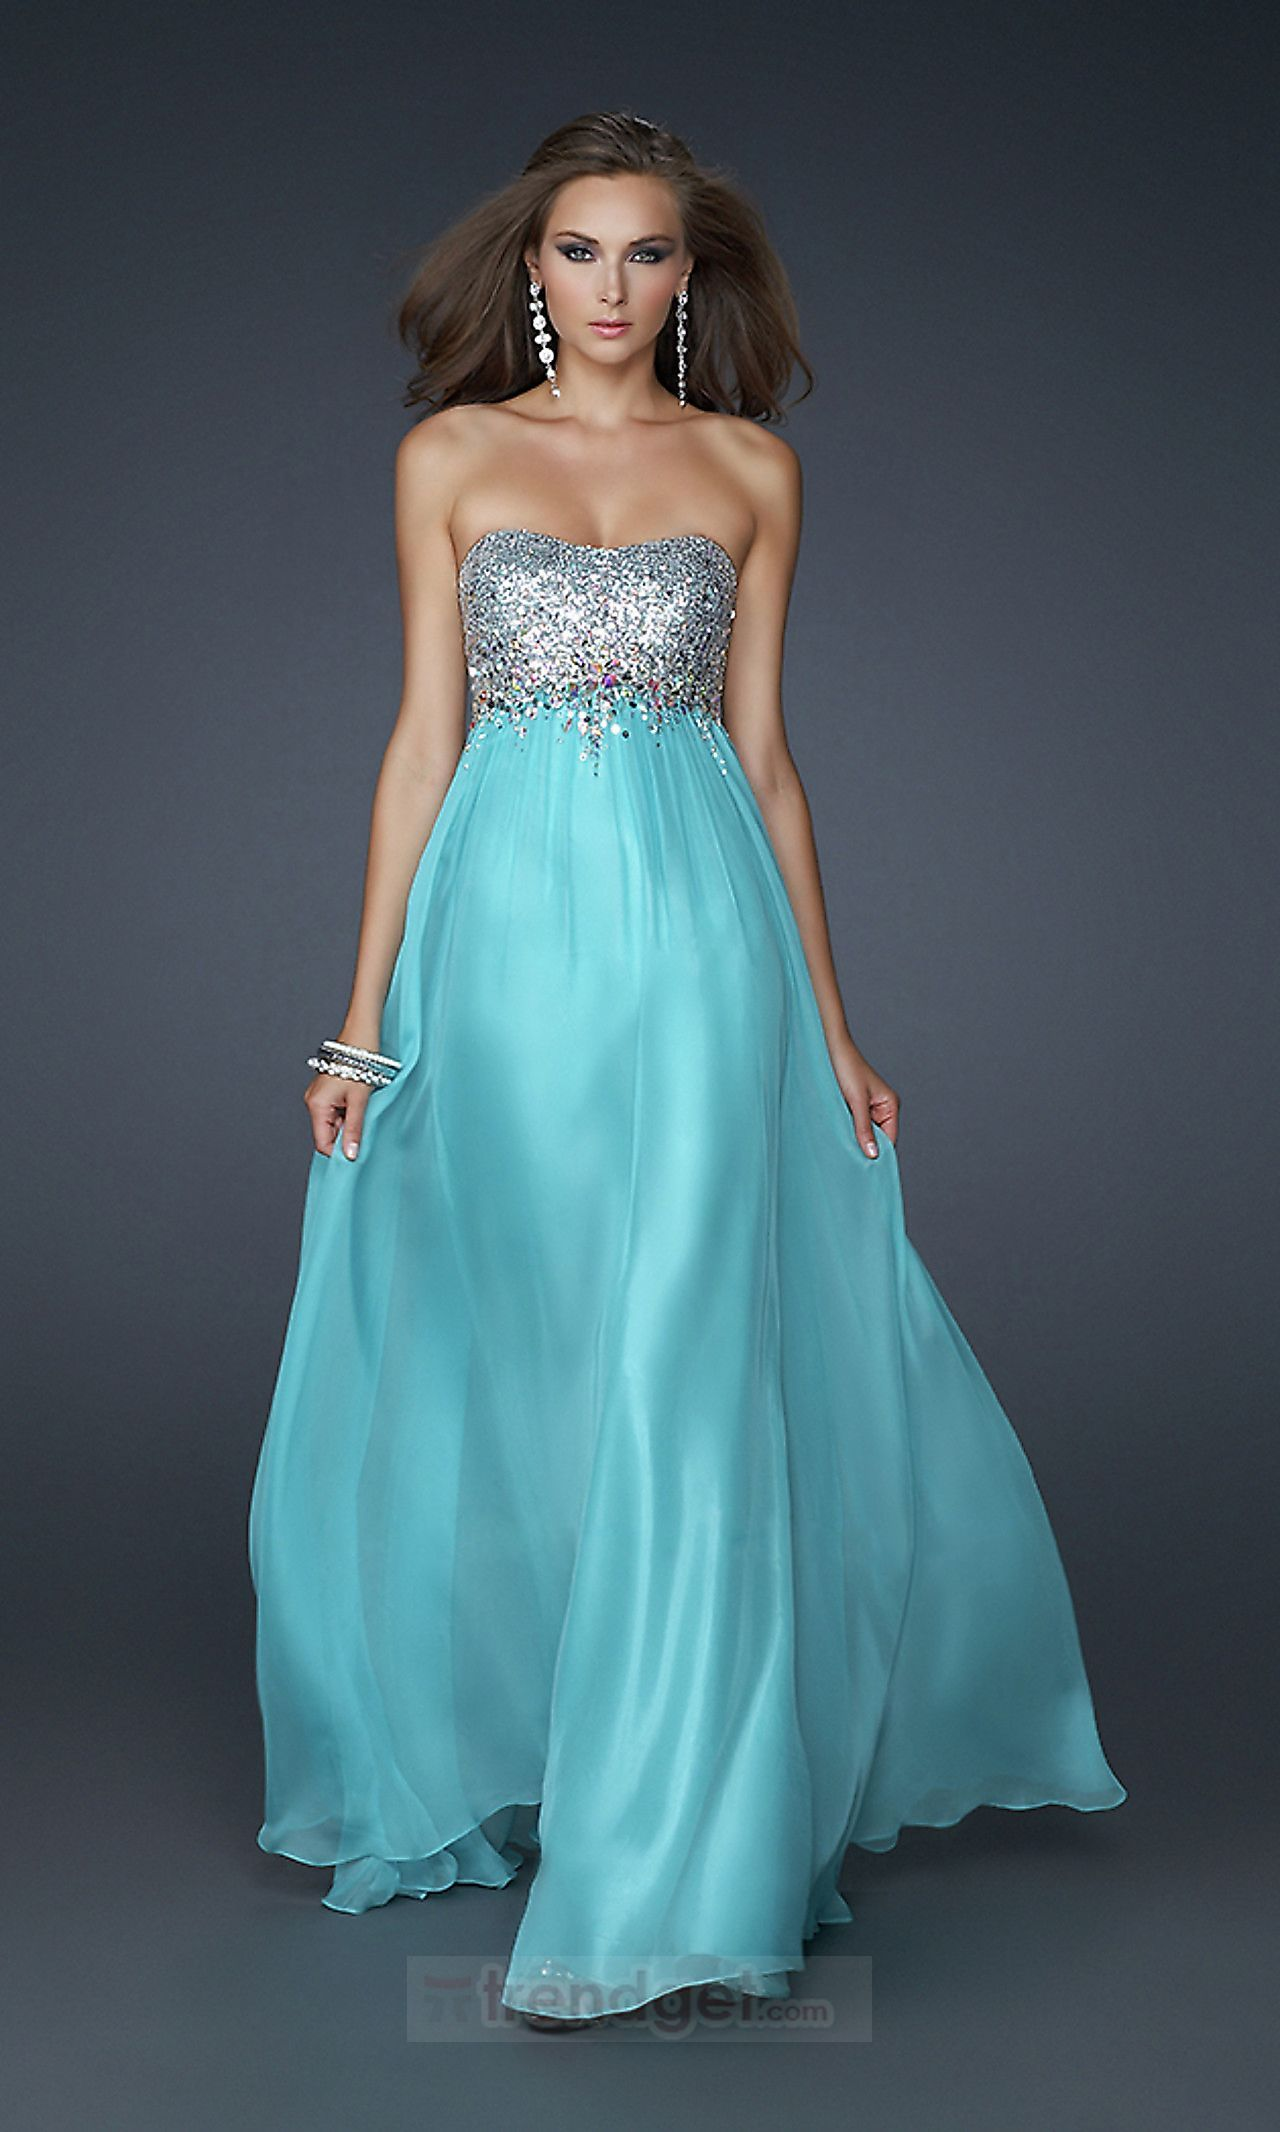 Images of Blue Strapless Prom Dress - Reikian